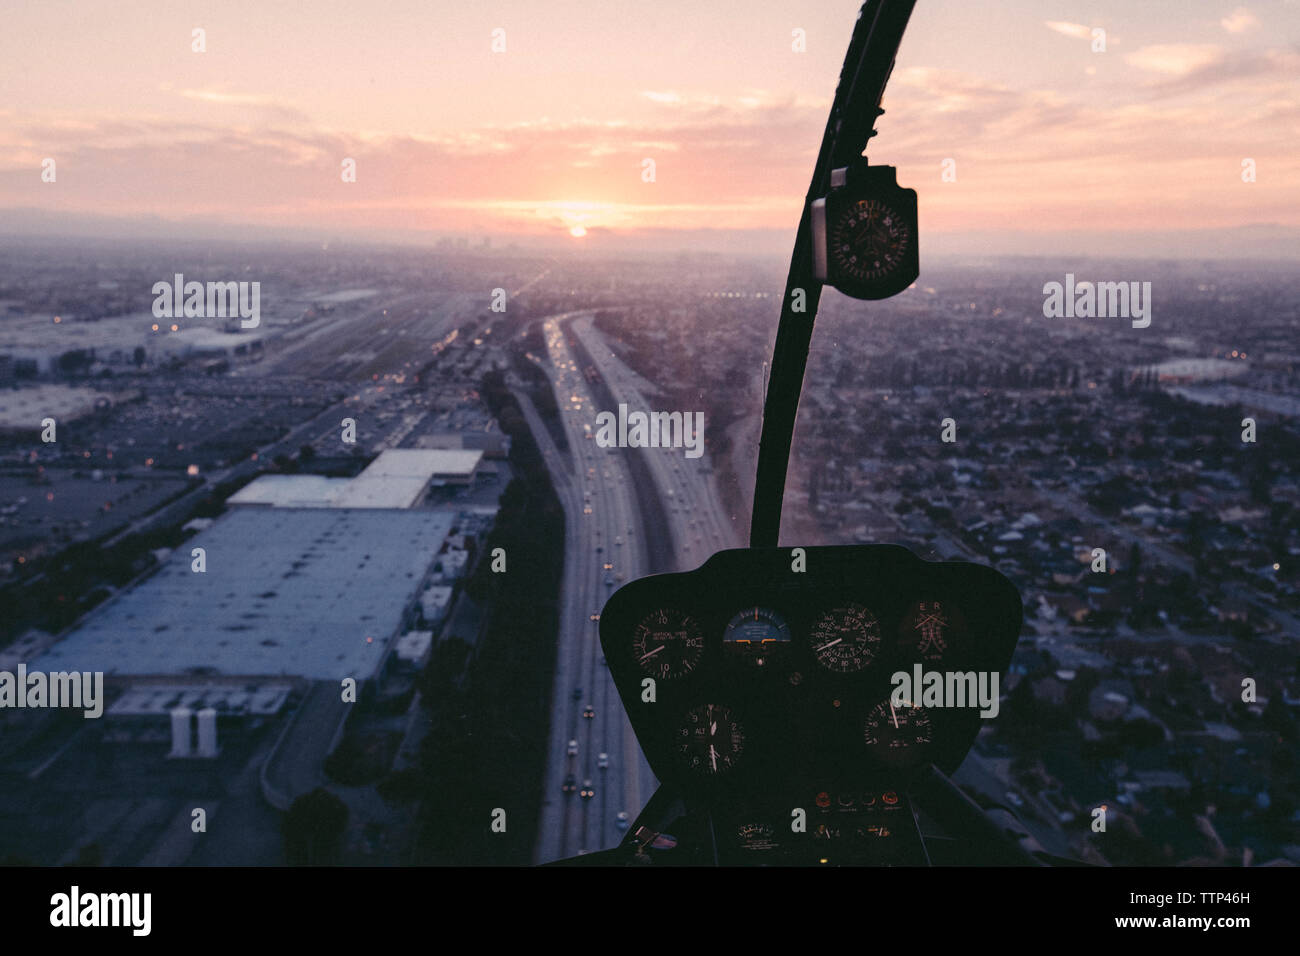 Cityscape seen from helicopter cockpit - Stock Image